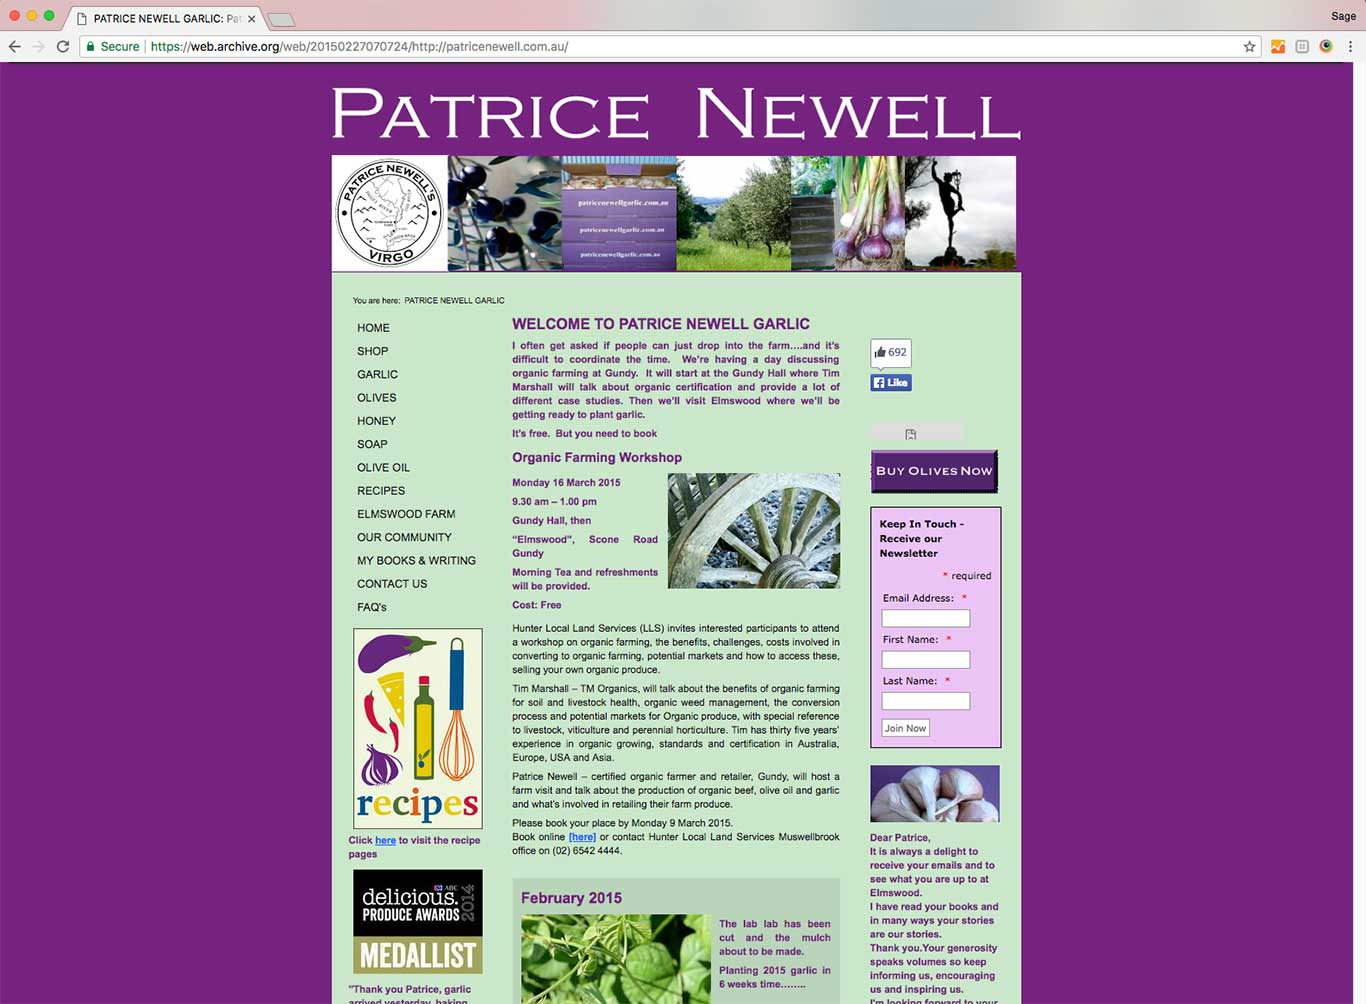 Patrice Newell | biodynamic food delivered to your door - old site